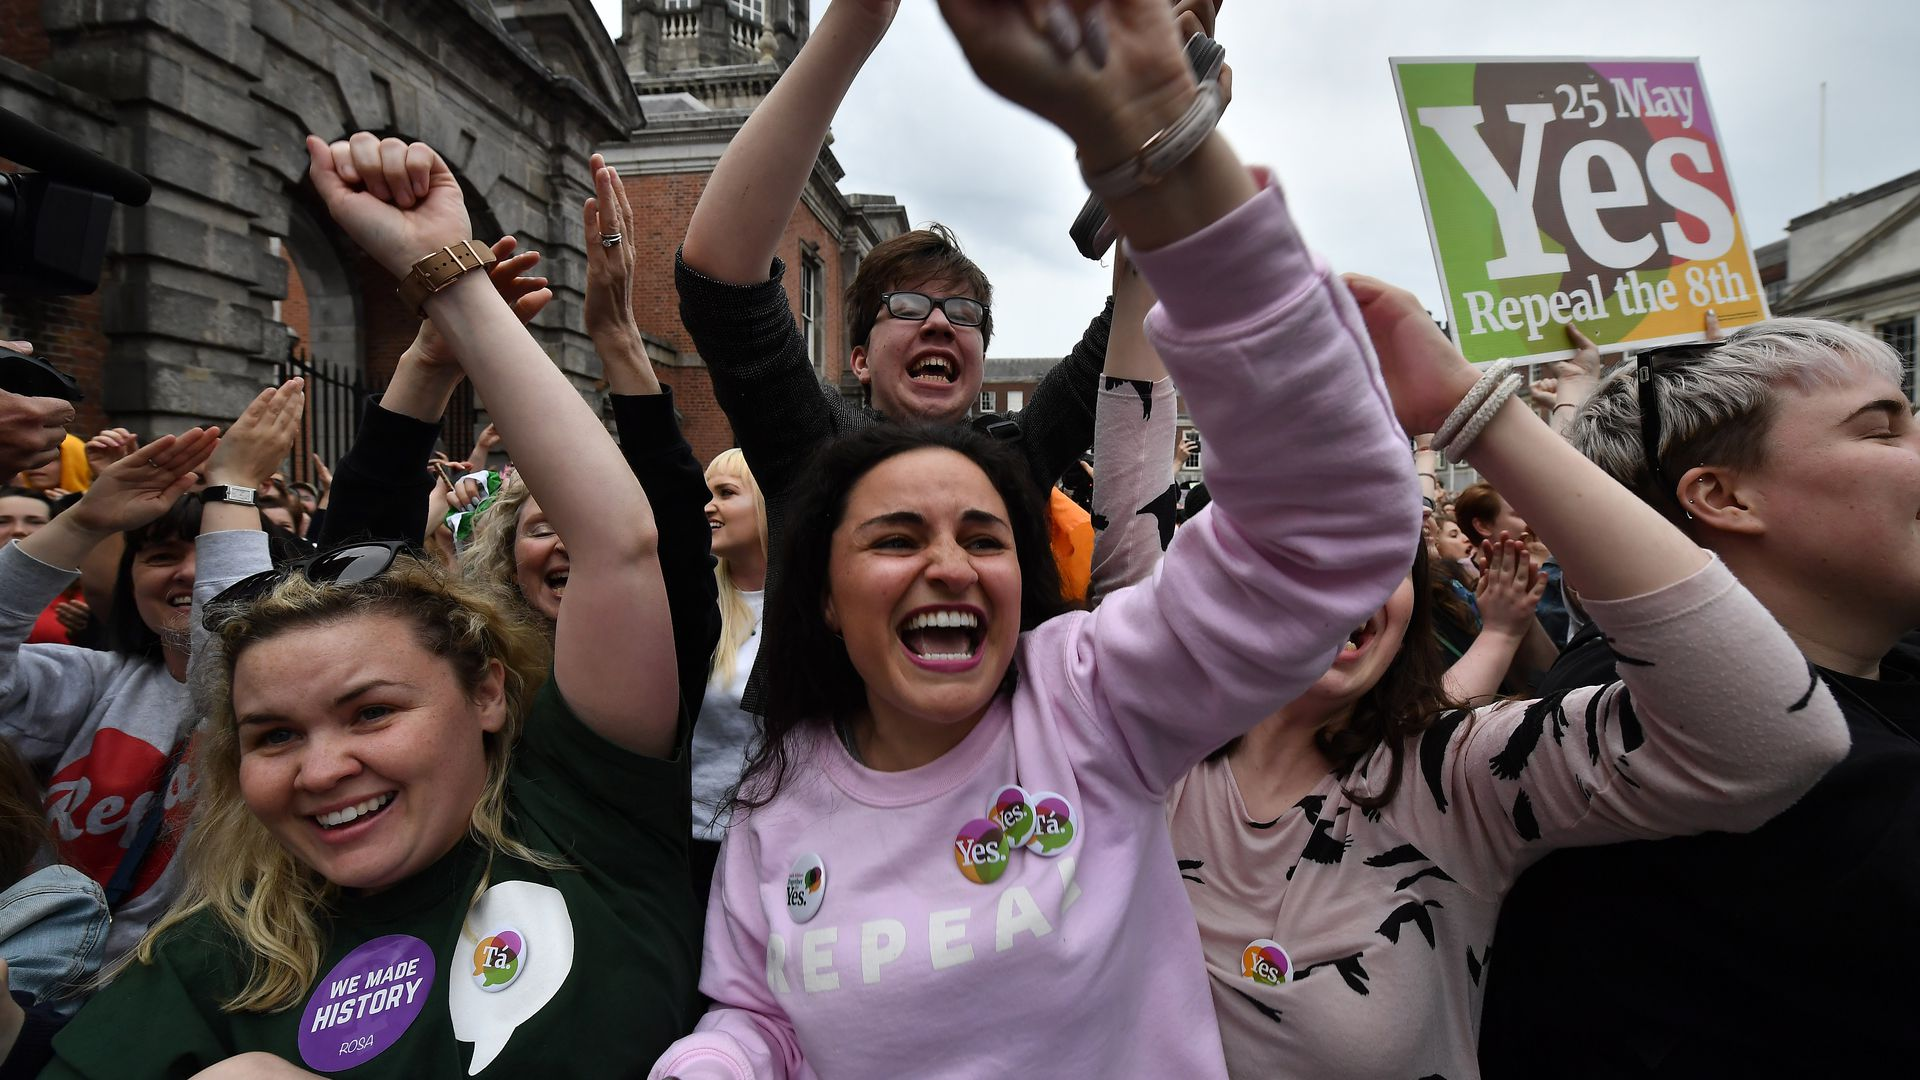 Yes voters celebrate as the result of the Irish referendum on the 8th amendment.